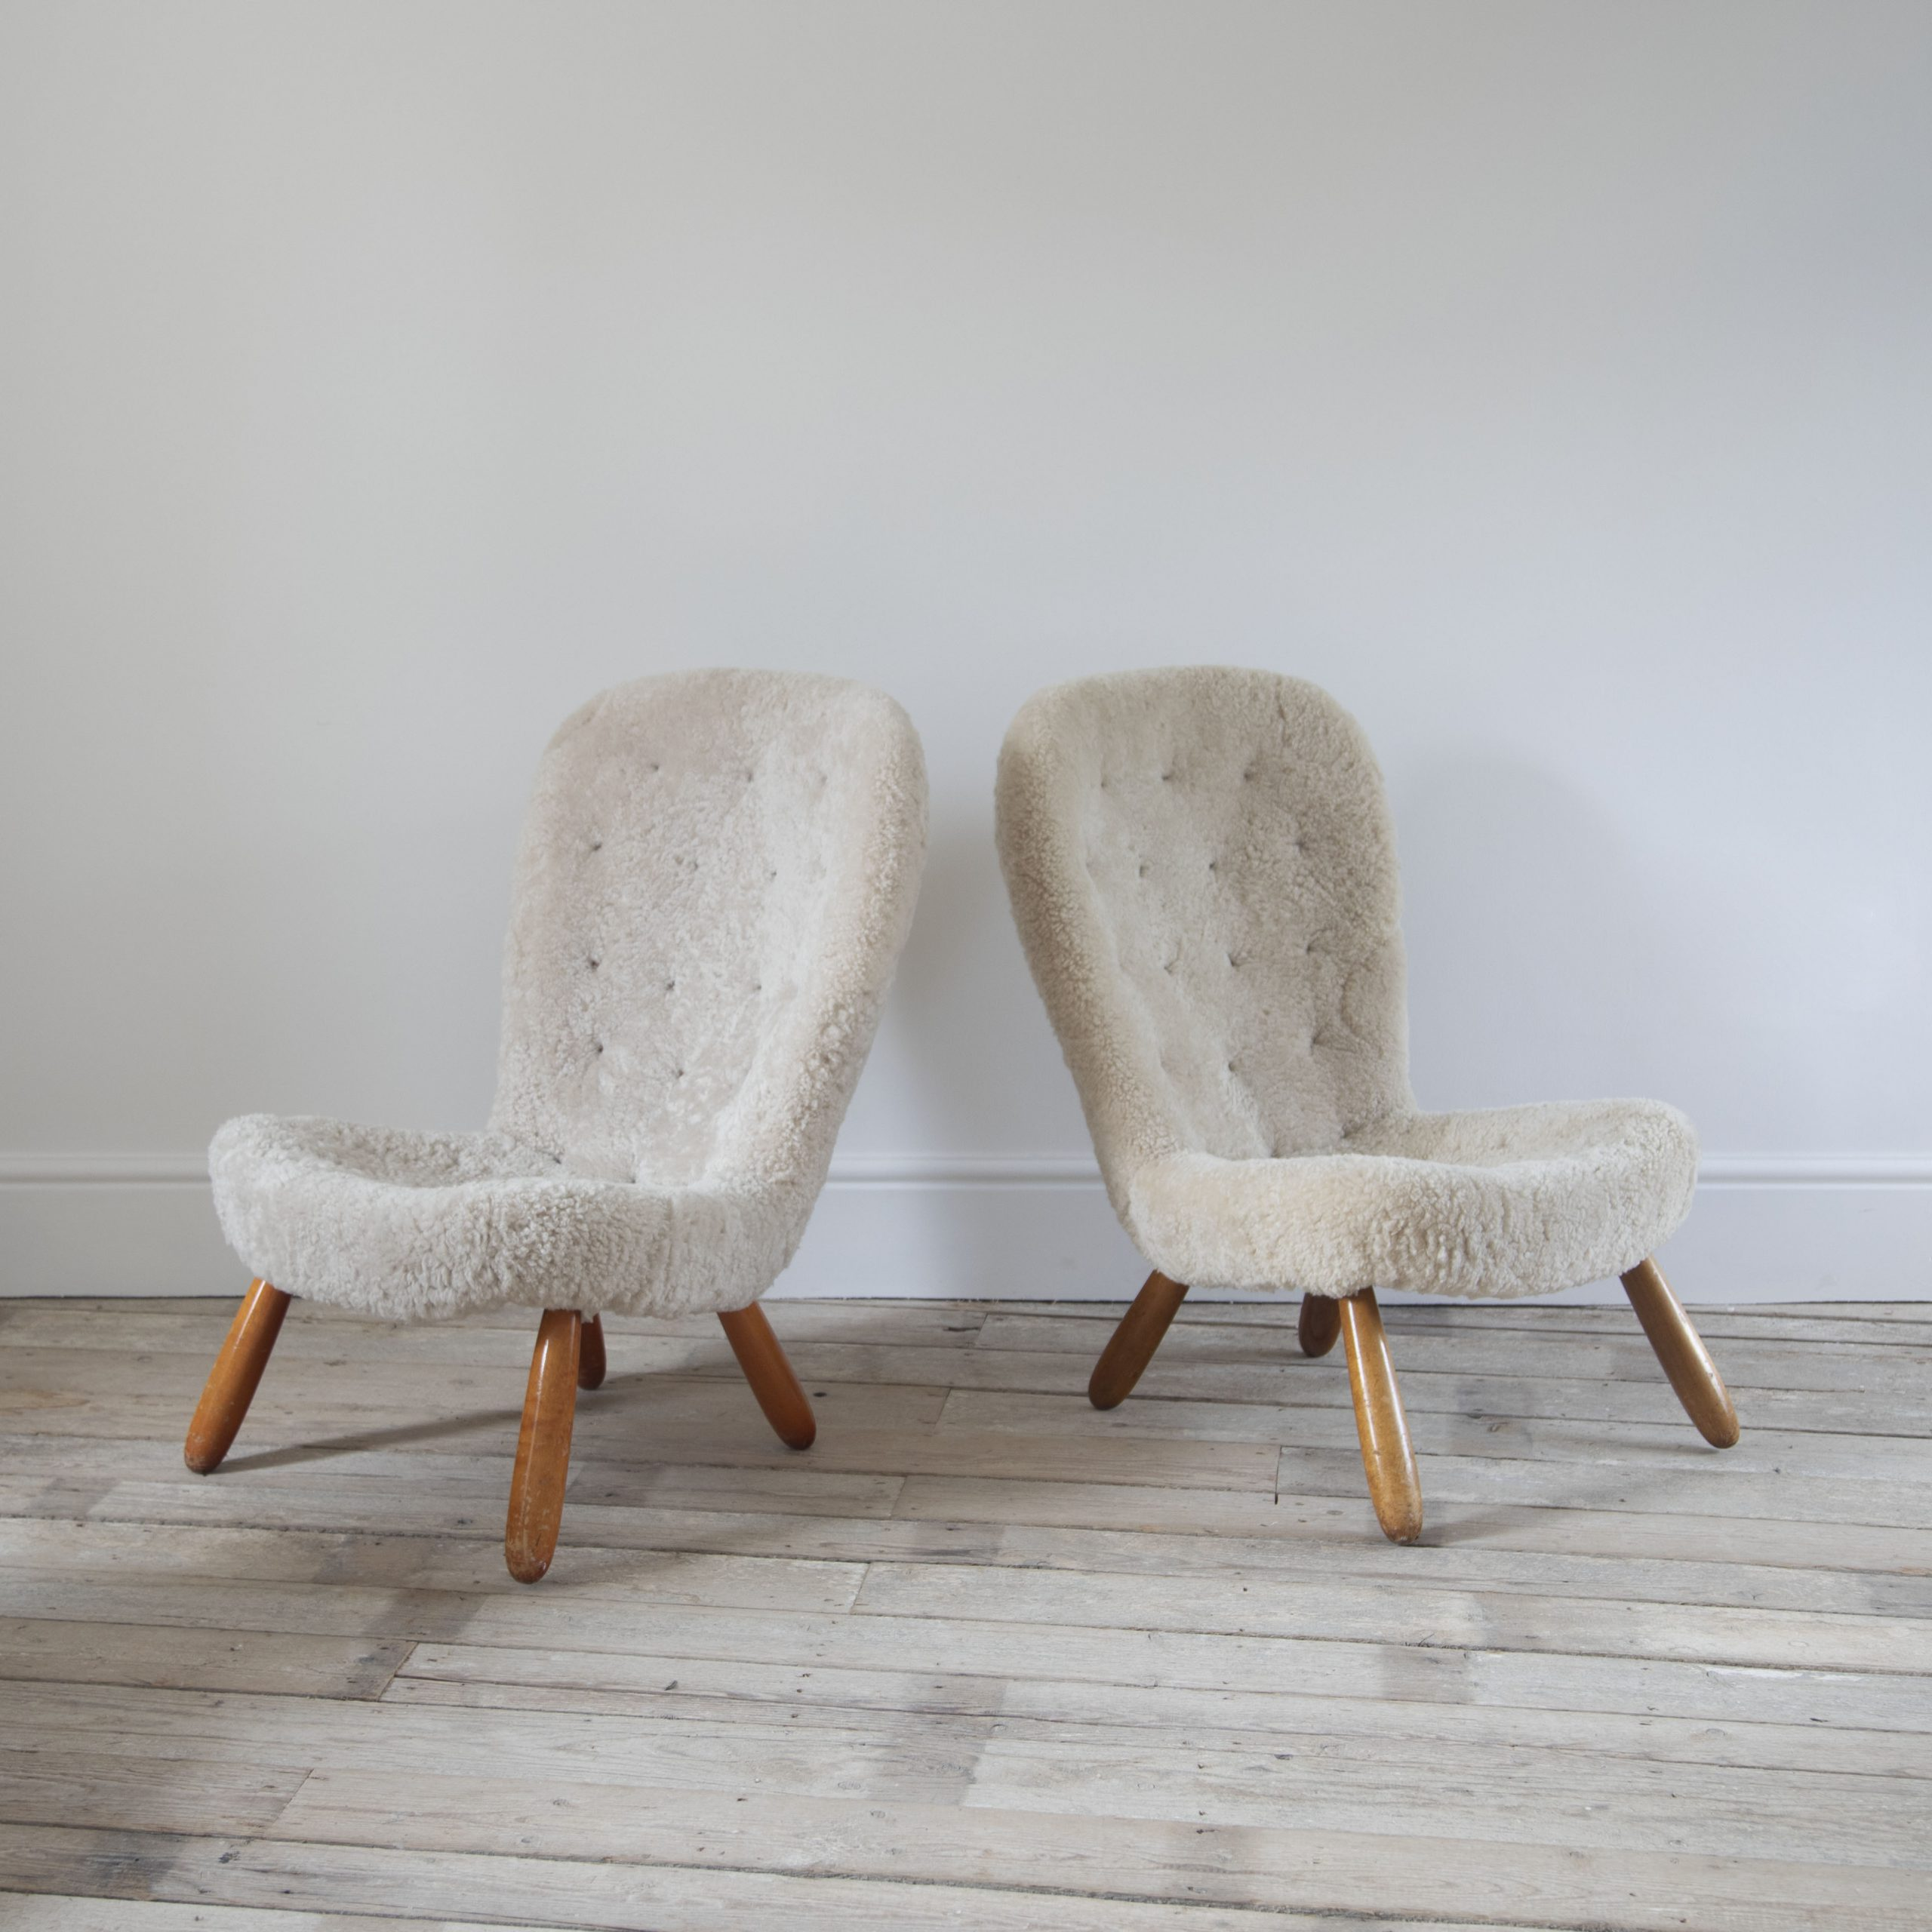 Pair of Philip Arctander Chairs